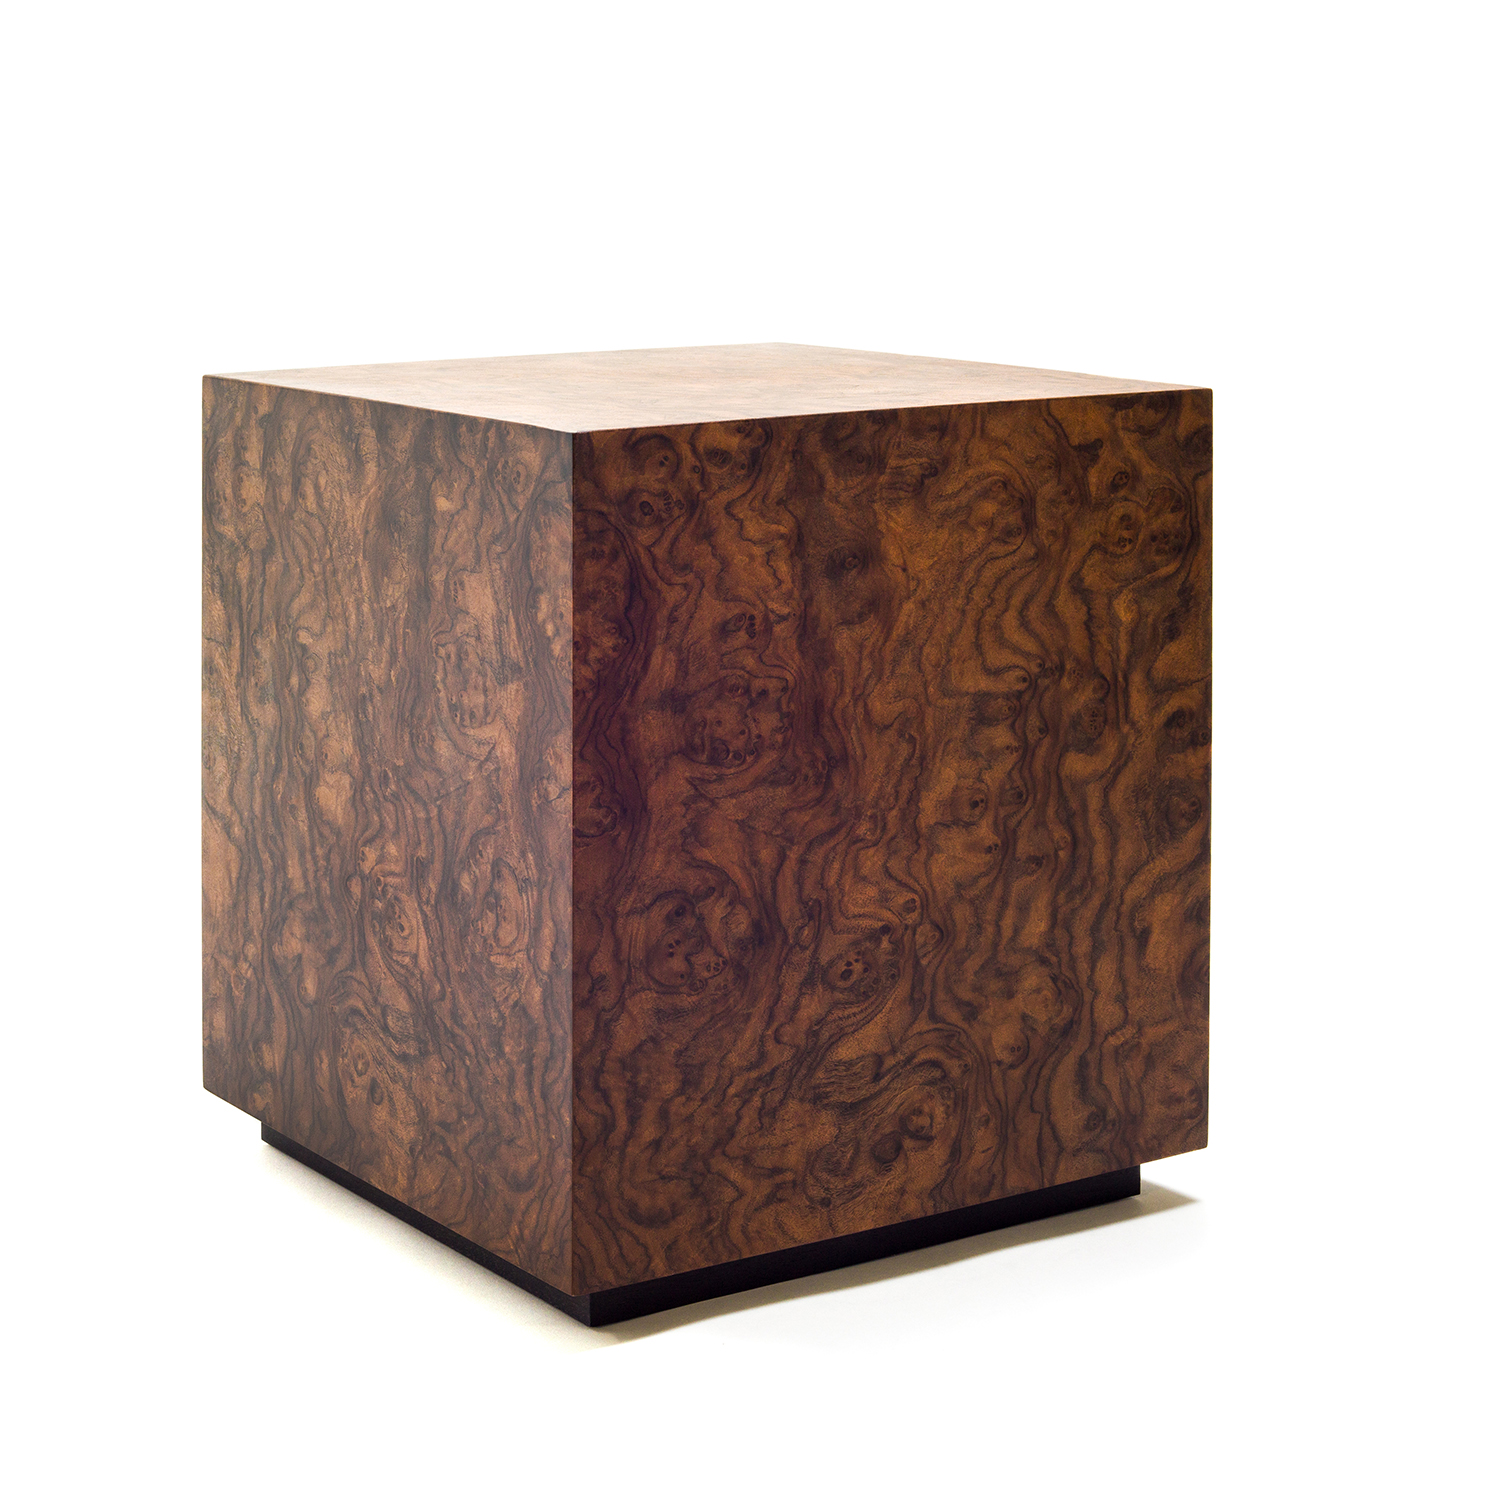 Milo Baughman inspired end table